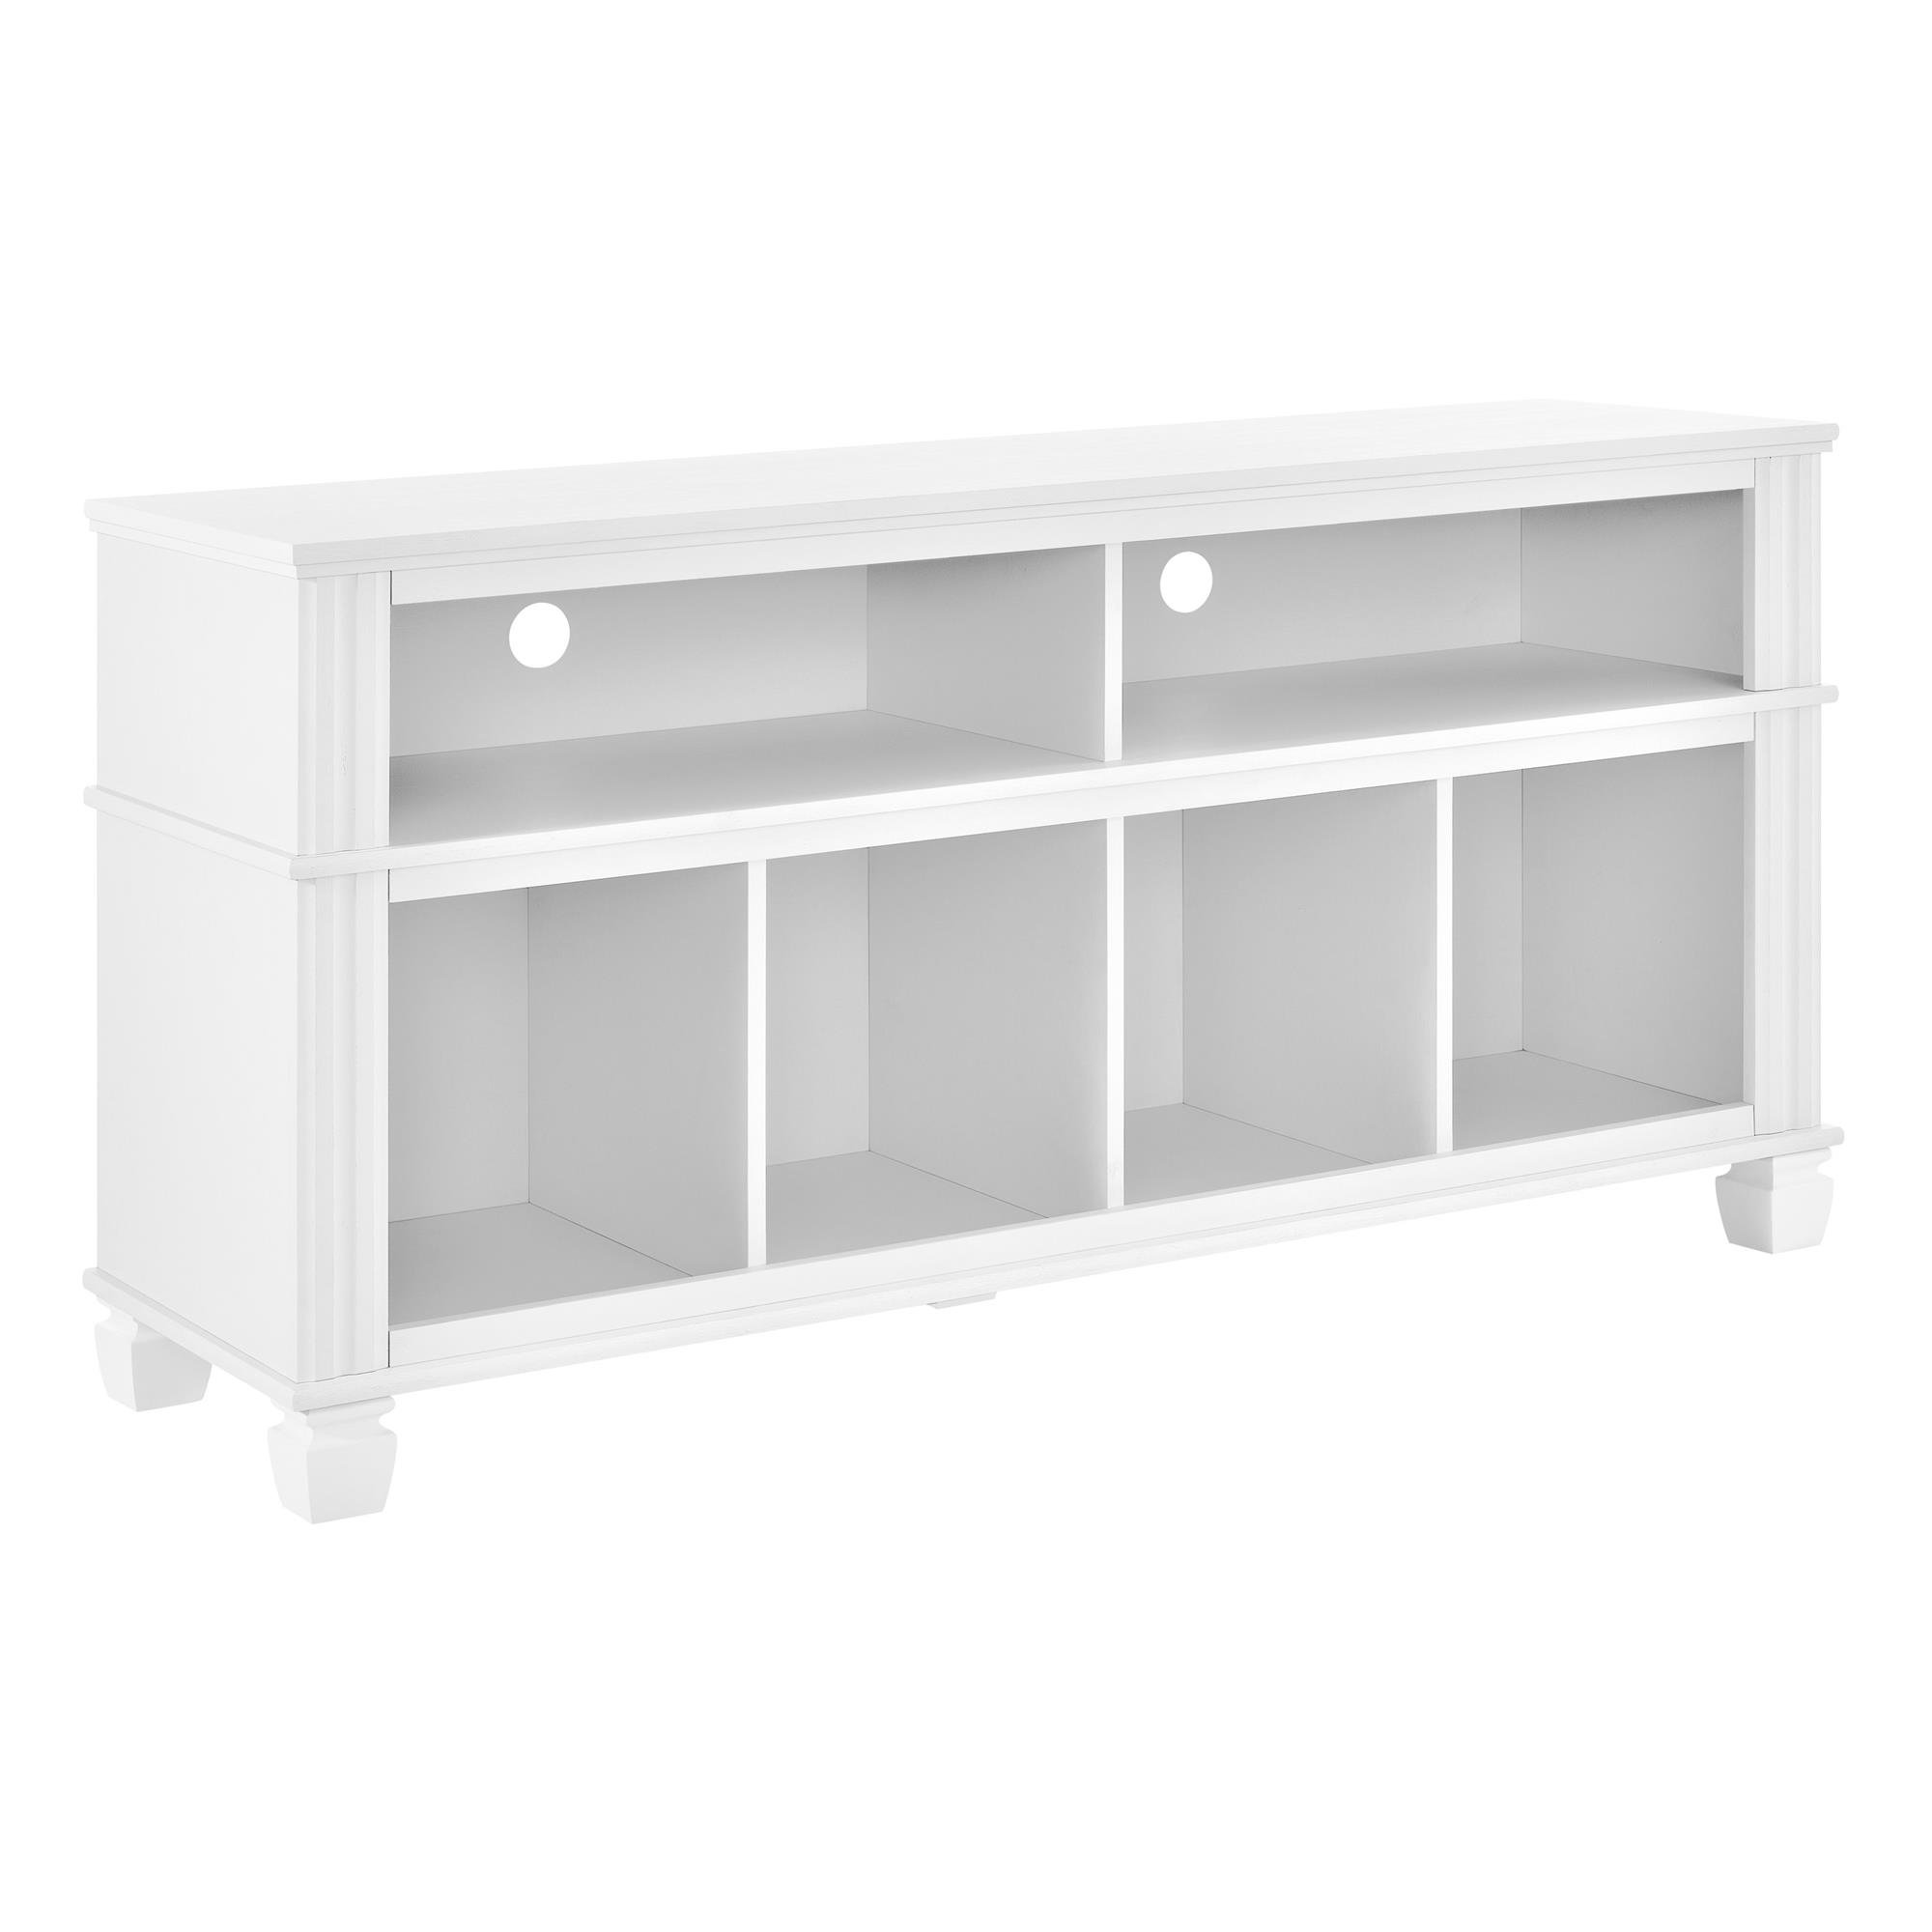 Ameriwood Home Woodcrest TV Stand for TVs up to 55'', White